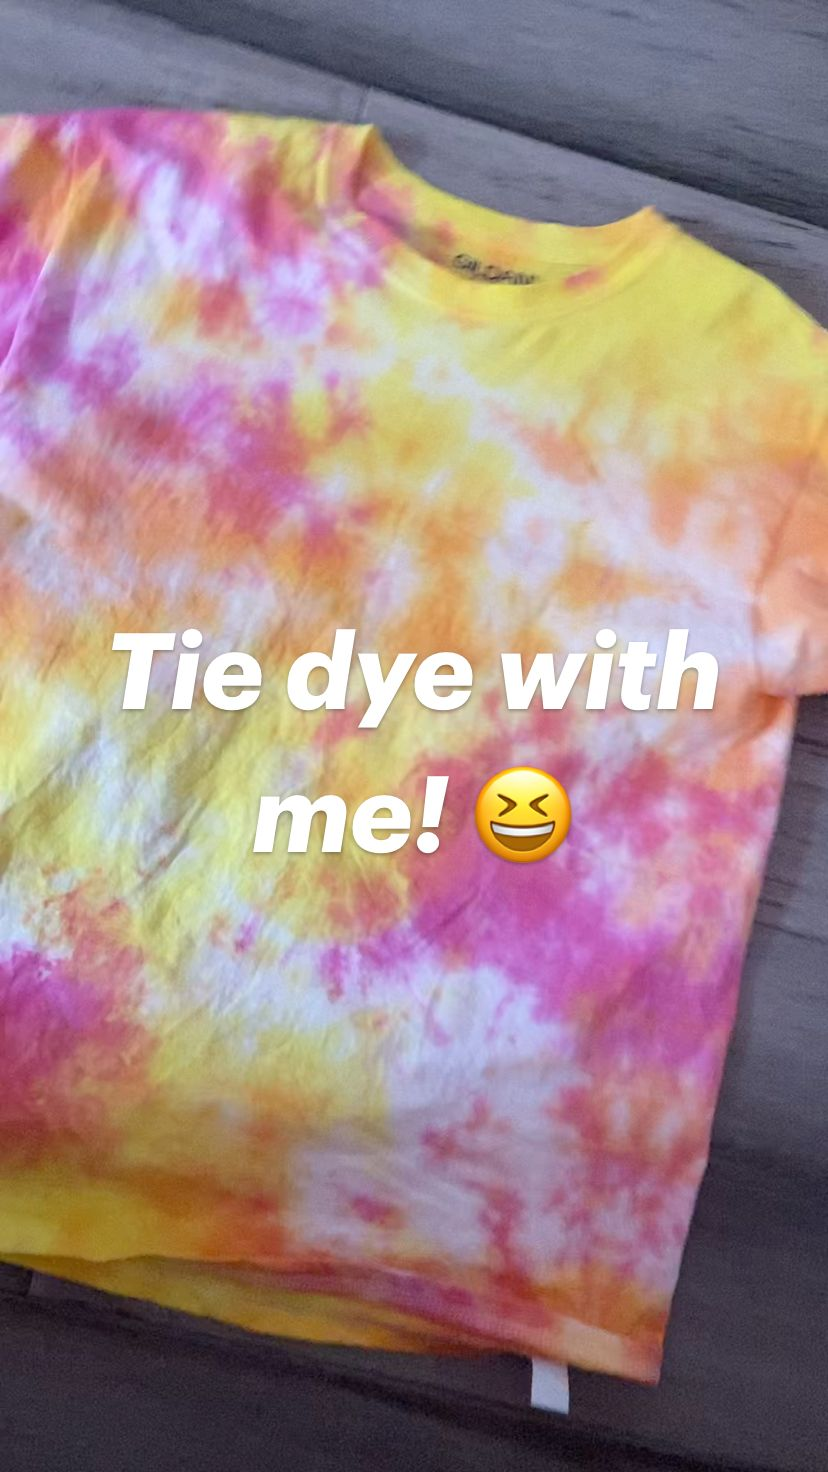 Tie dye with me! 😆